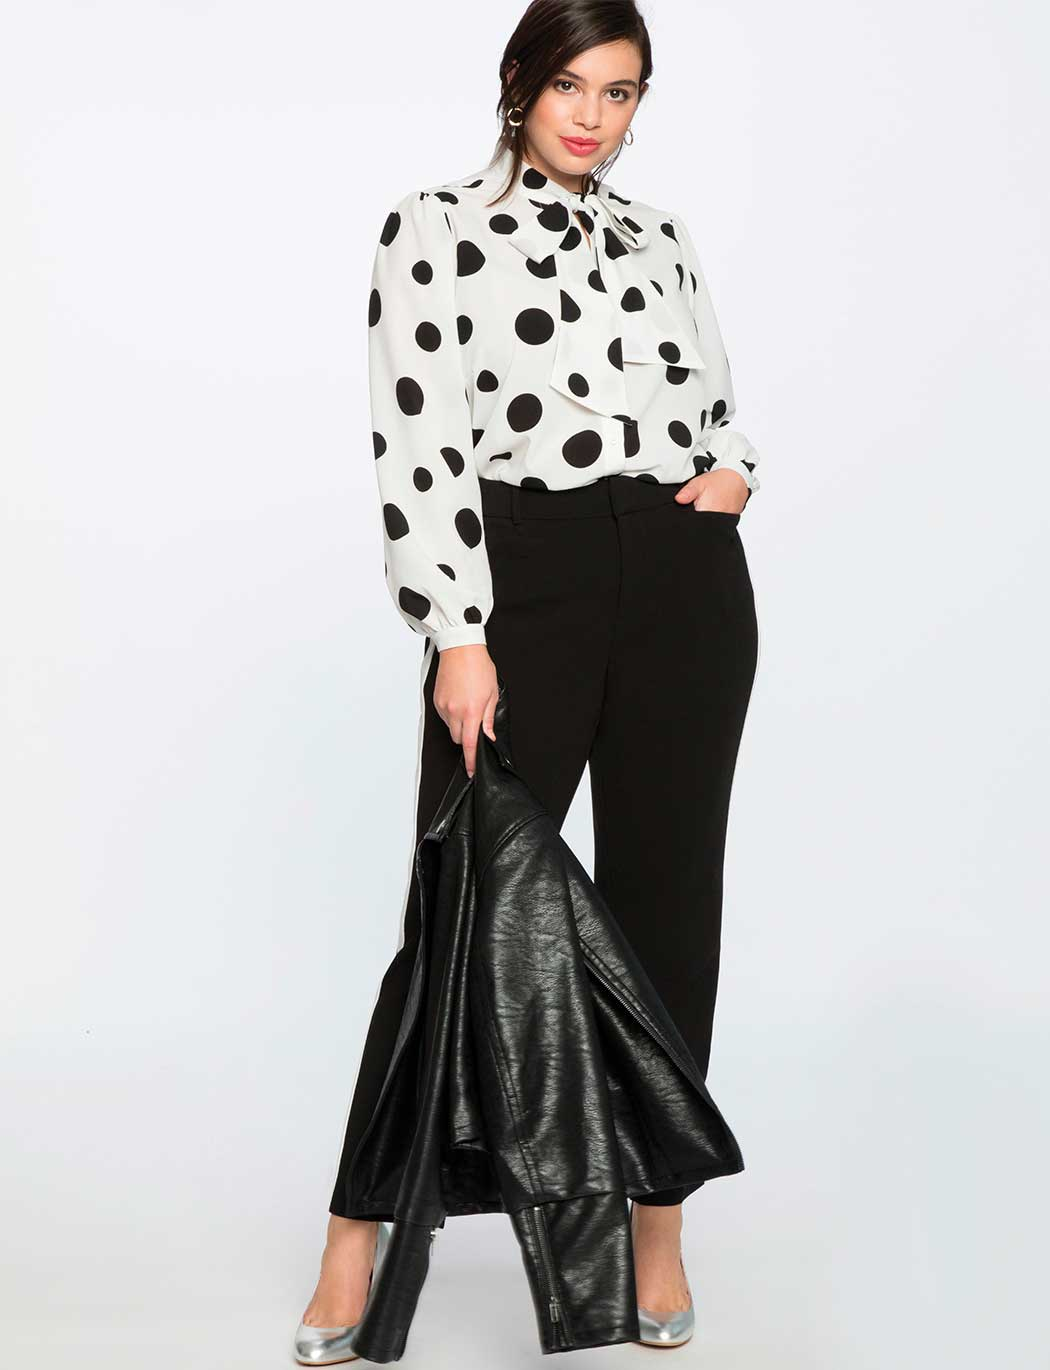 27ee764f3 Plus Size Clothing, Dresses, Skirts, Suits, Tops, Jeans and Pants ...